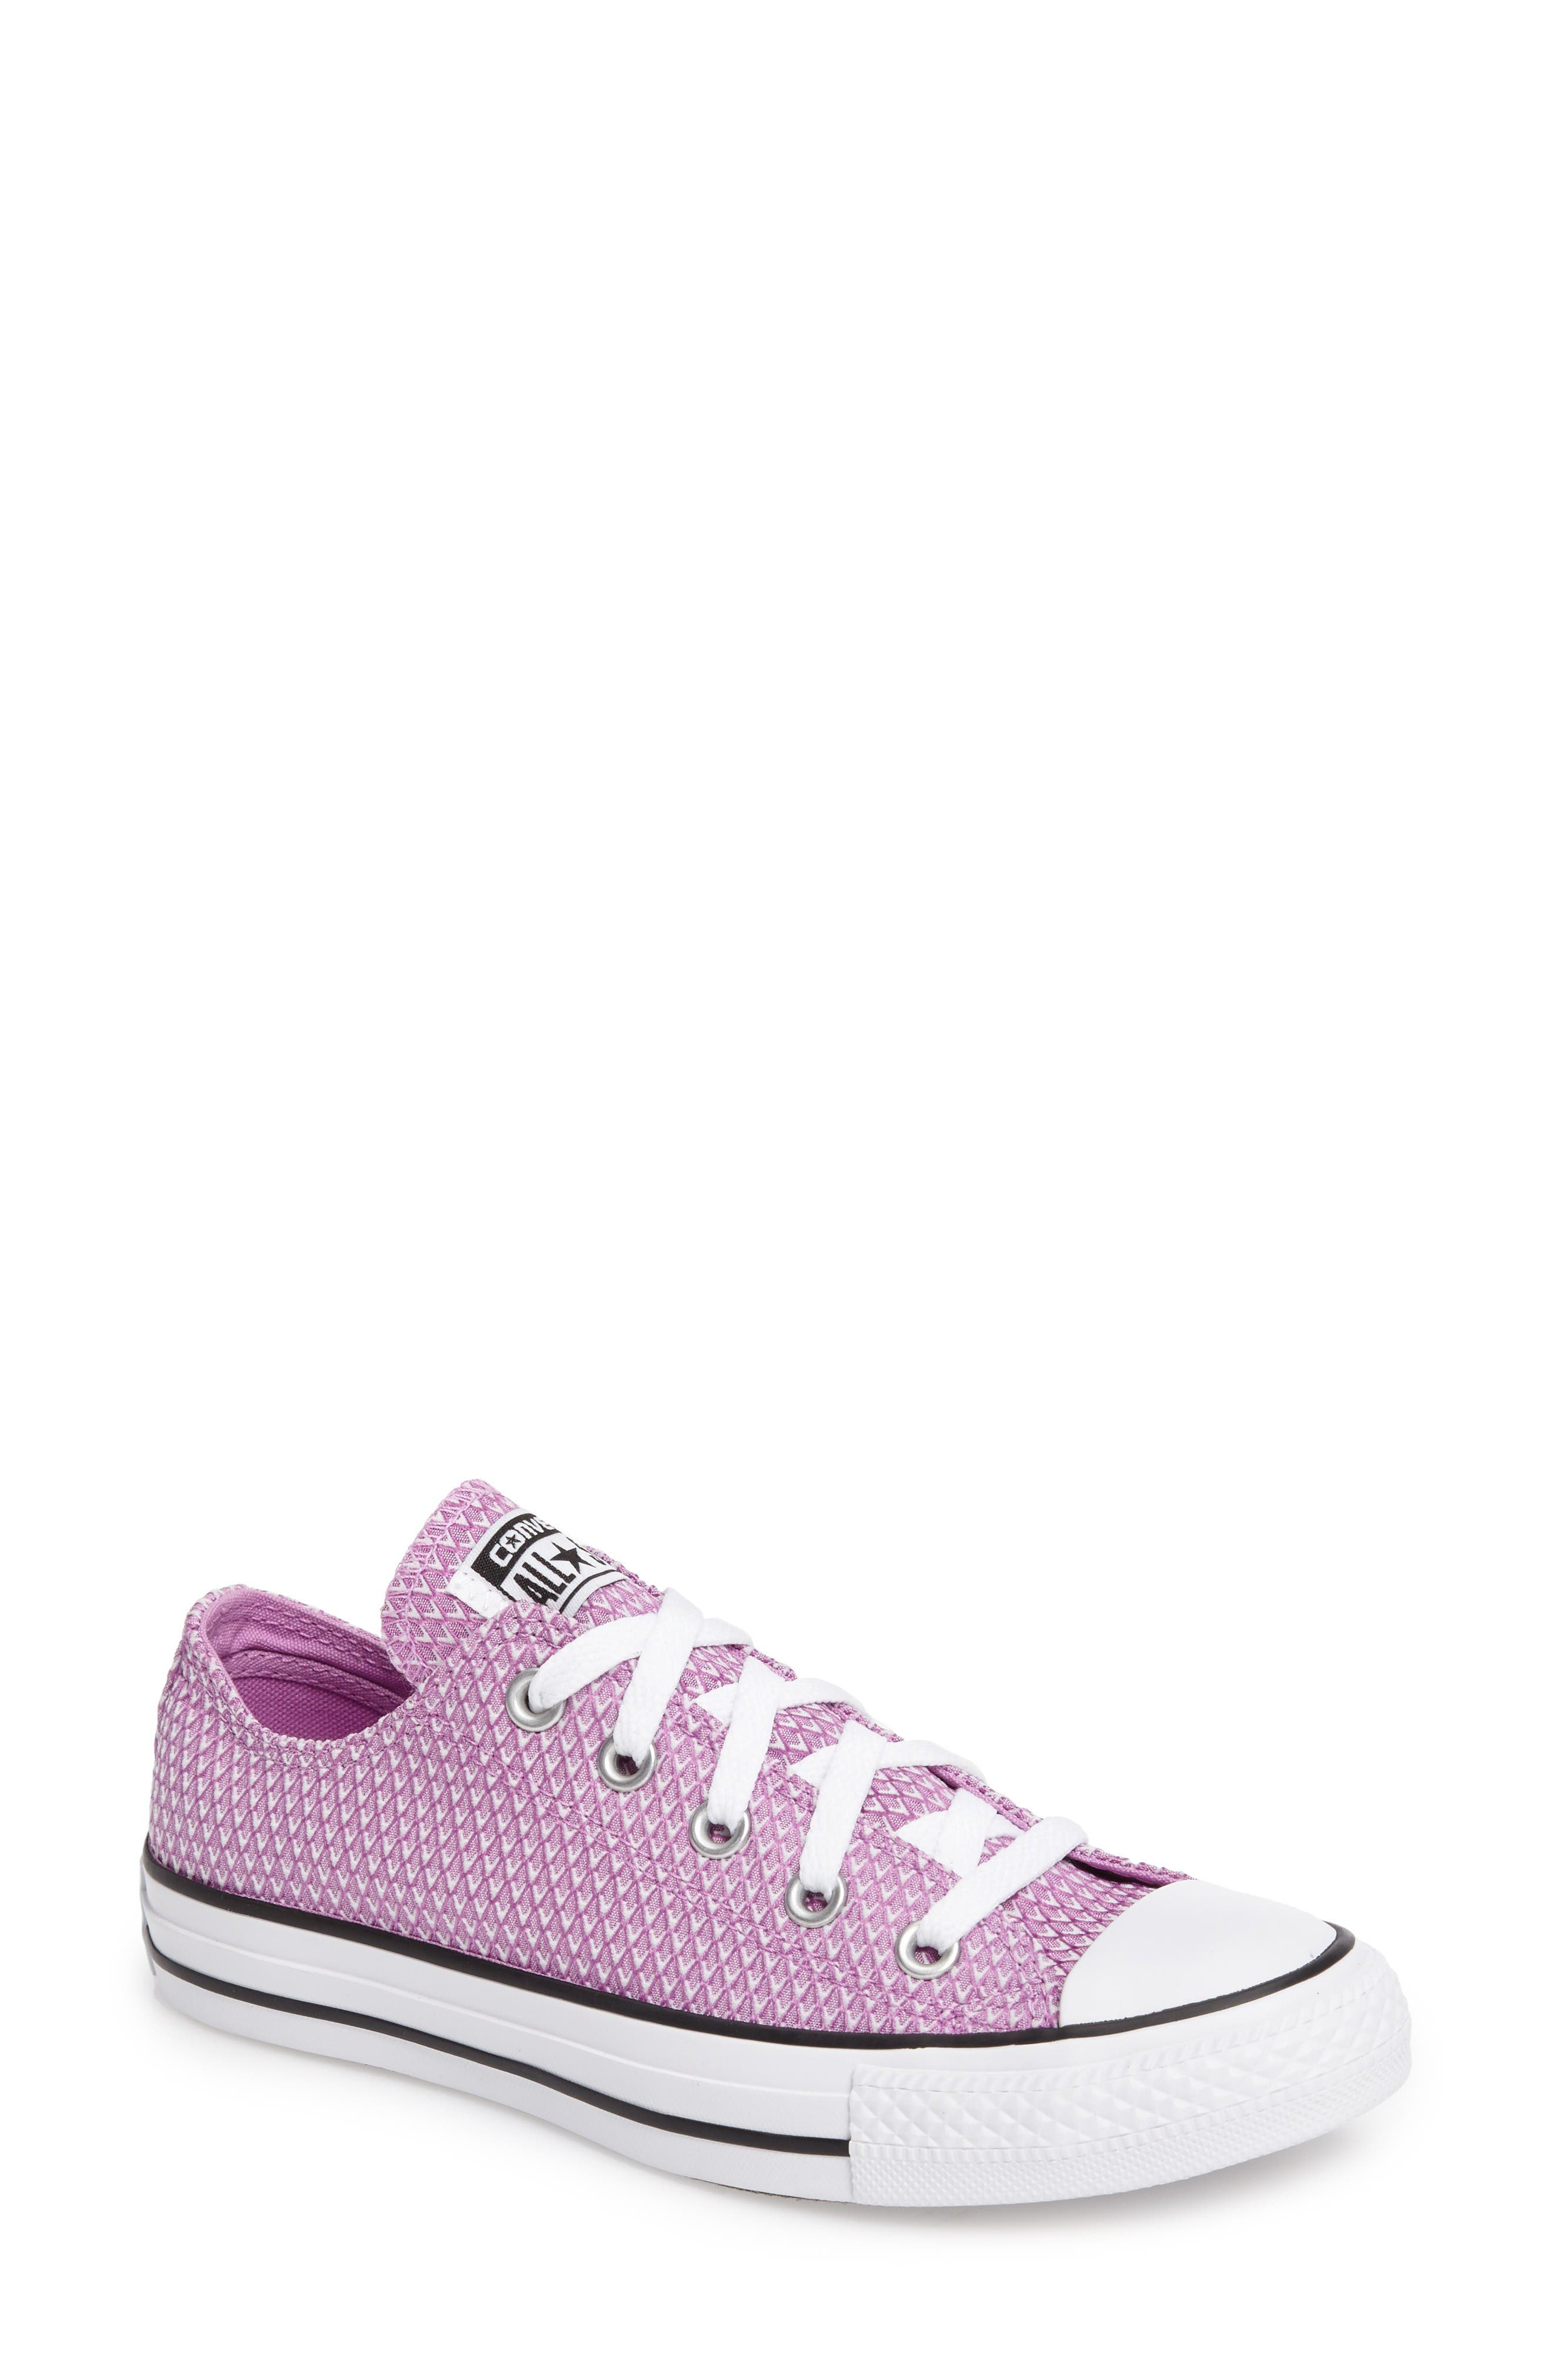 CONVERSE Chuck Taylor<sup>®</sup> All Star<sup>®</sup> Woven Ox Sneaker